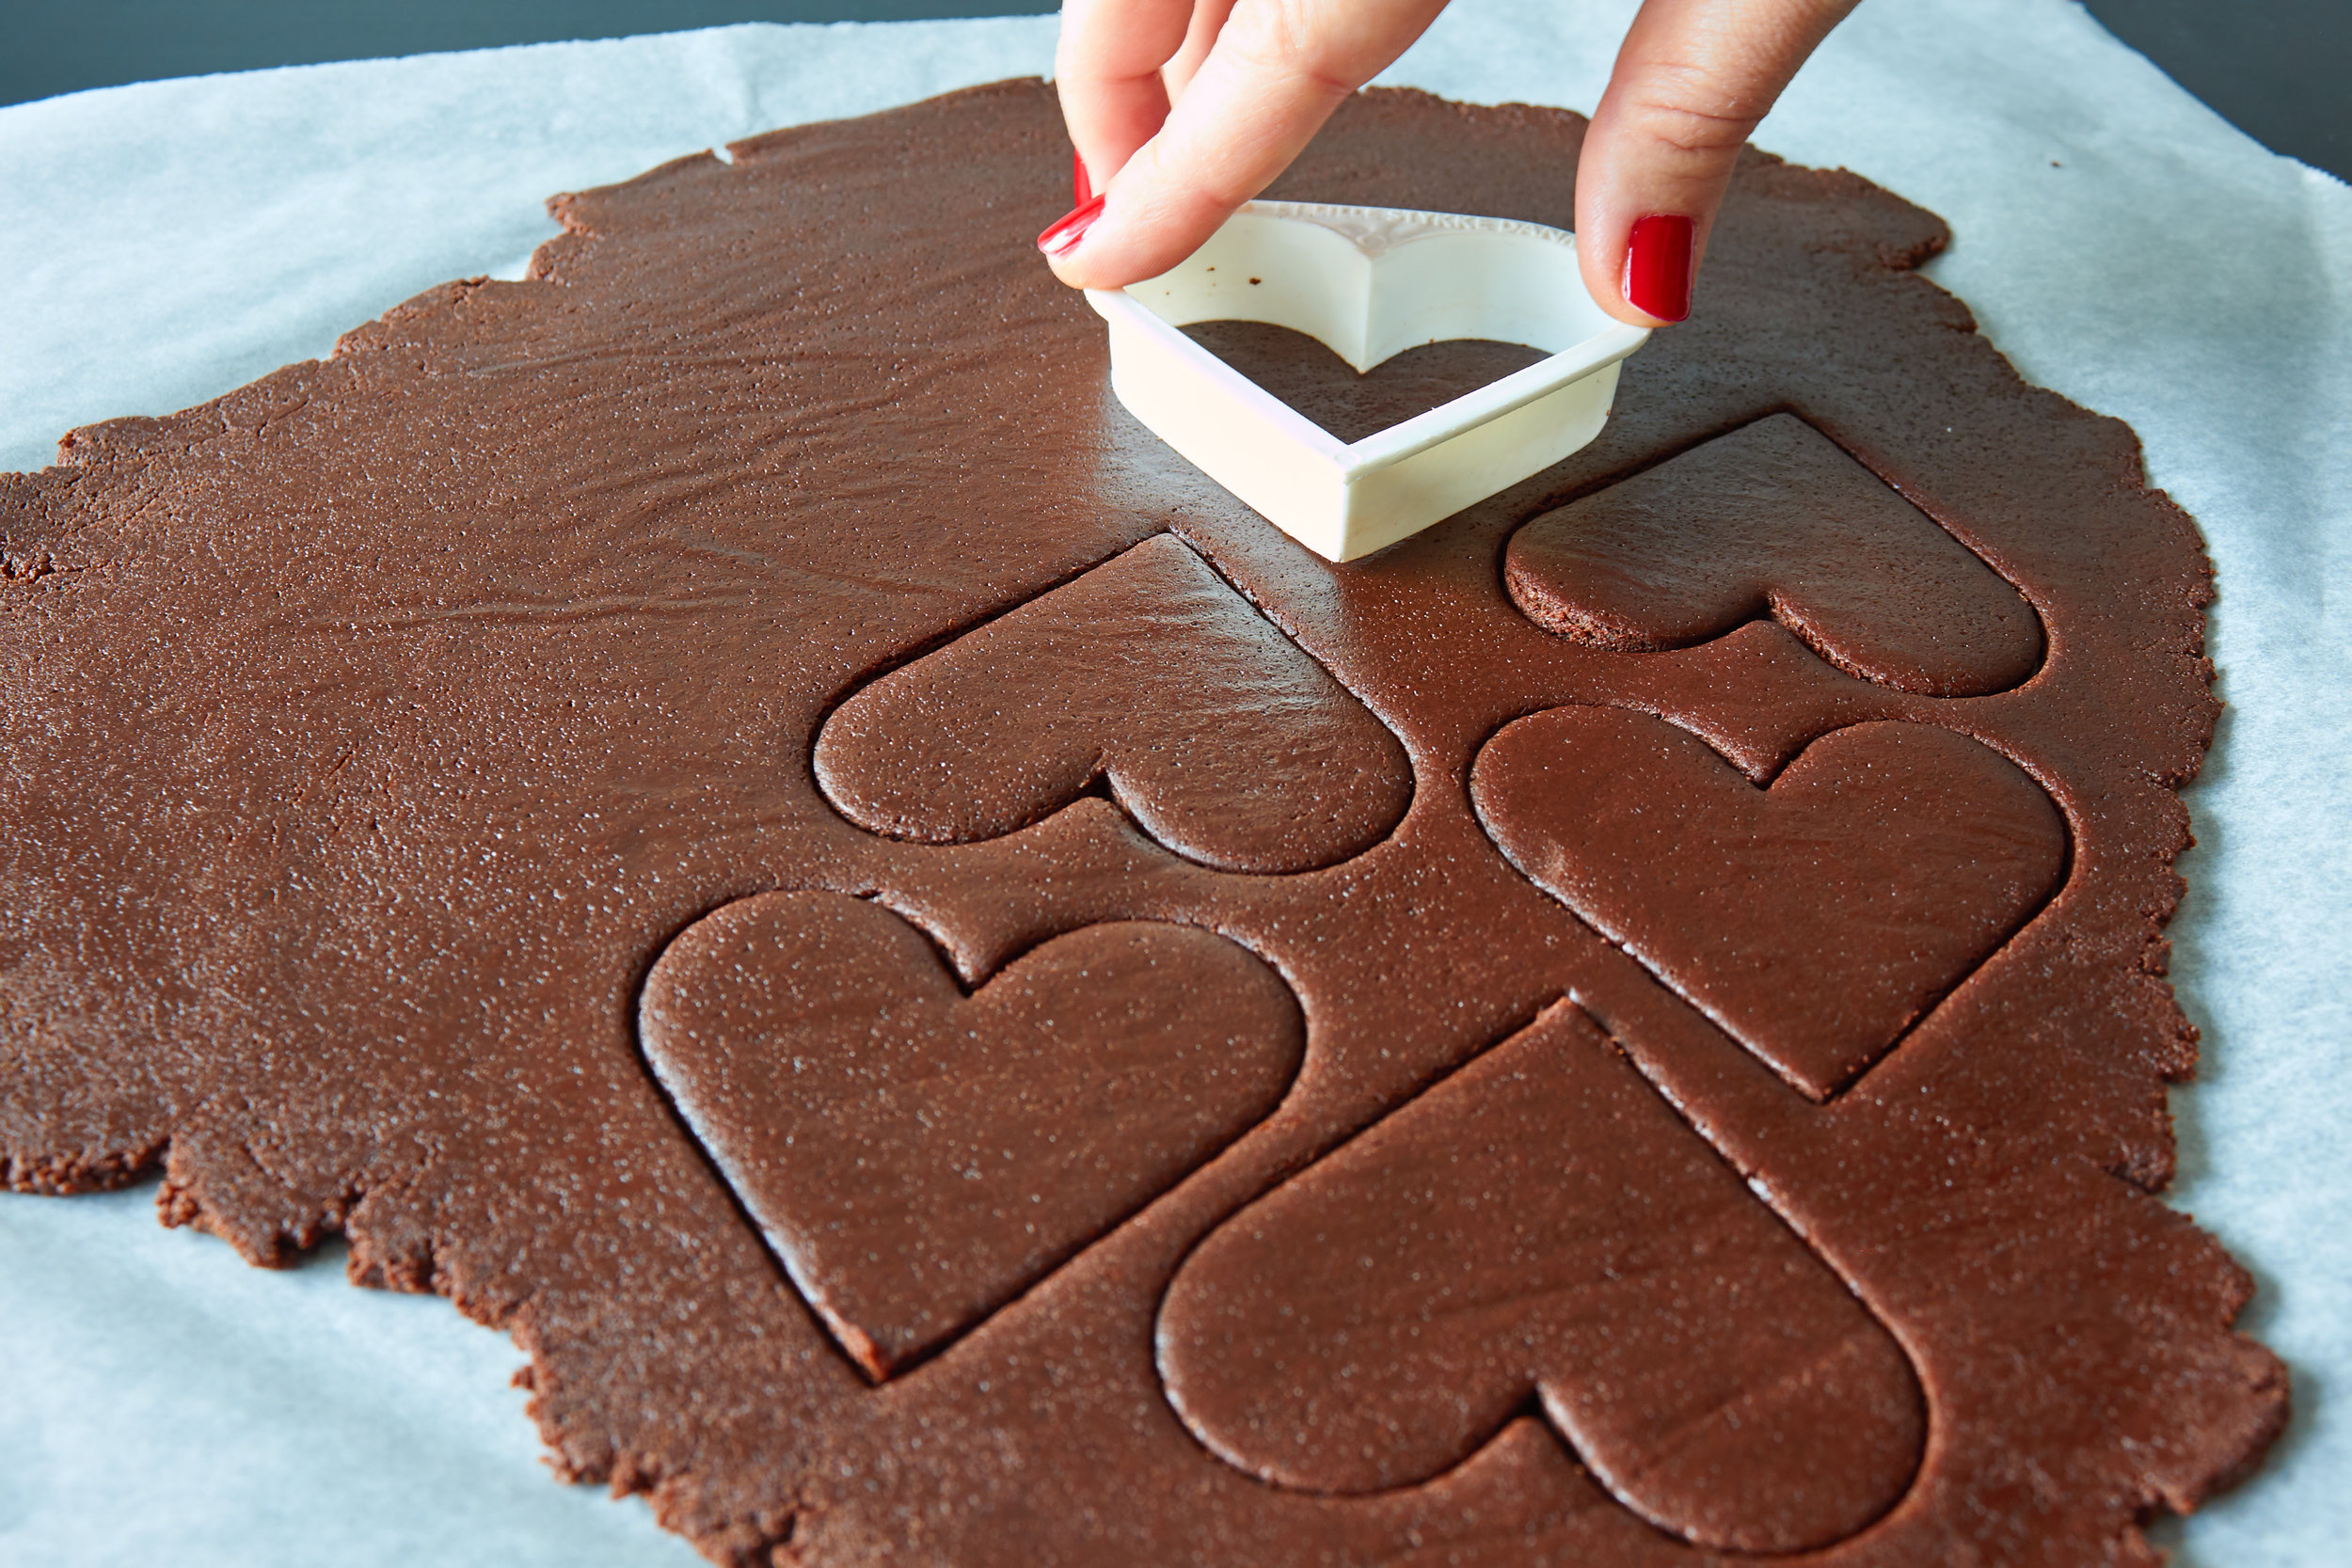 Homemade Oreo Cookies - cutting out the cookies with a heart-shaped cutter | In Carina's Kitchen